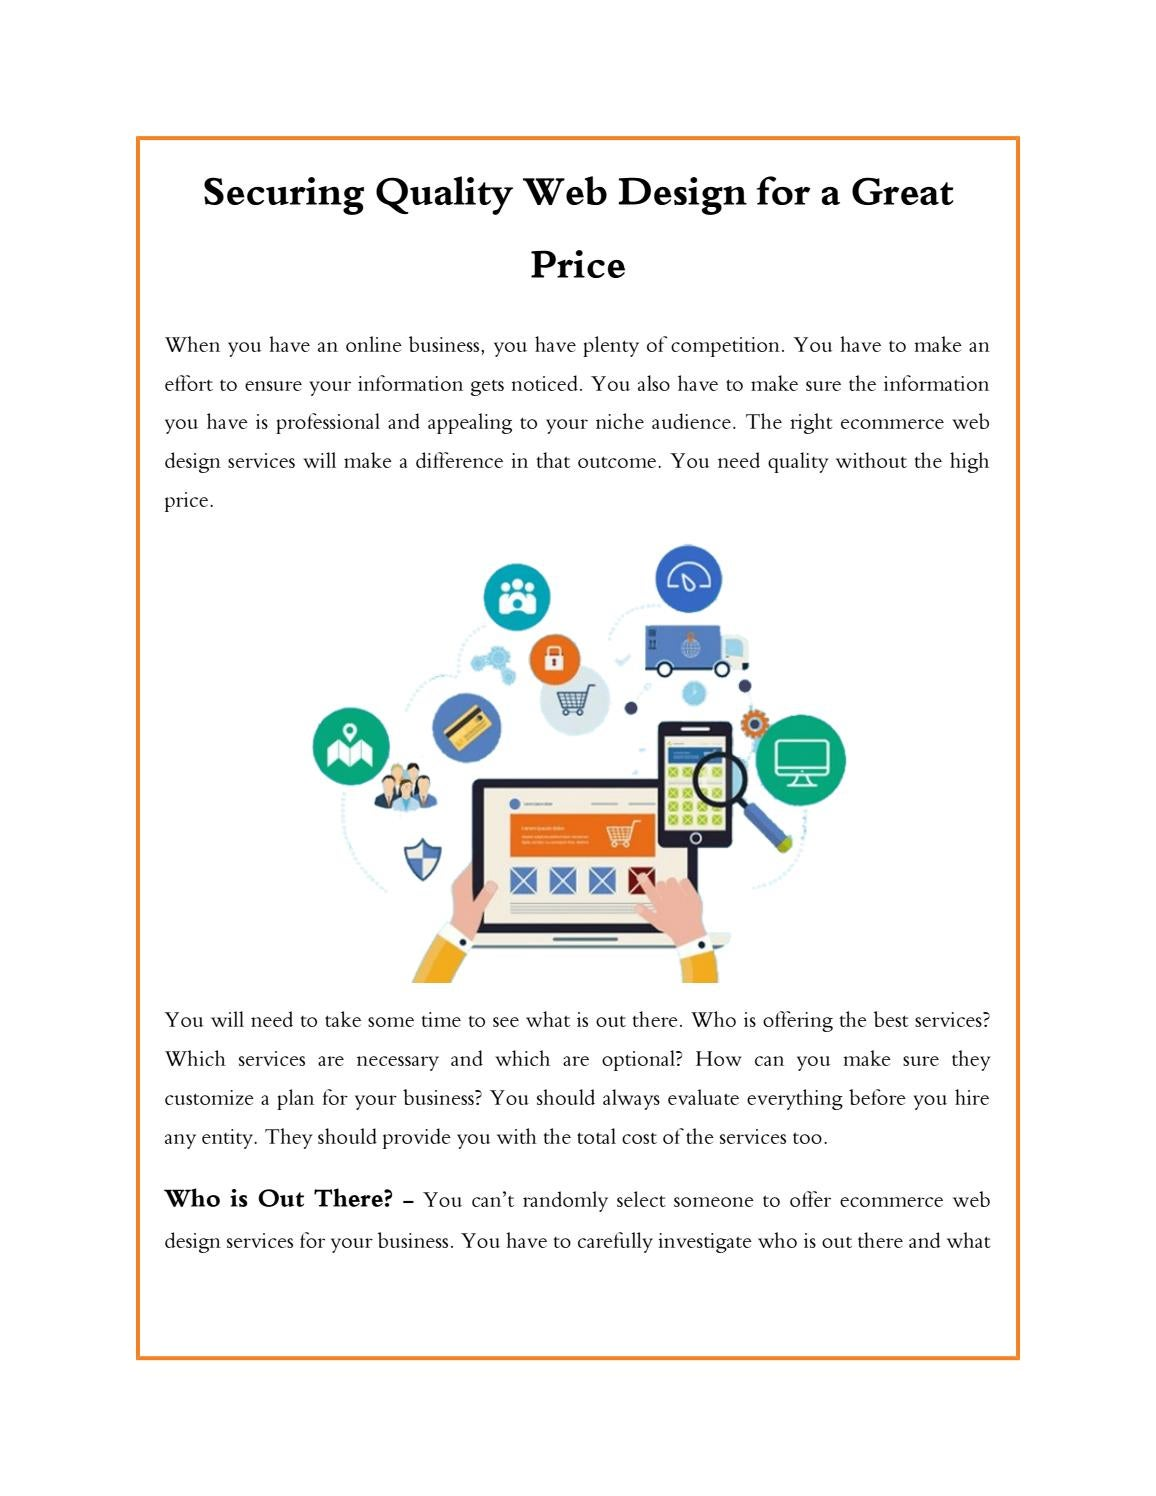 Securing Quality Web Design For A Great Price By Kingslunuk Issuu